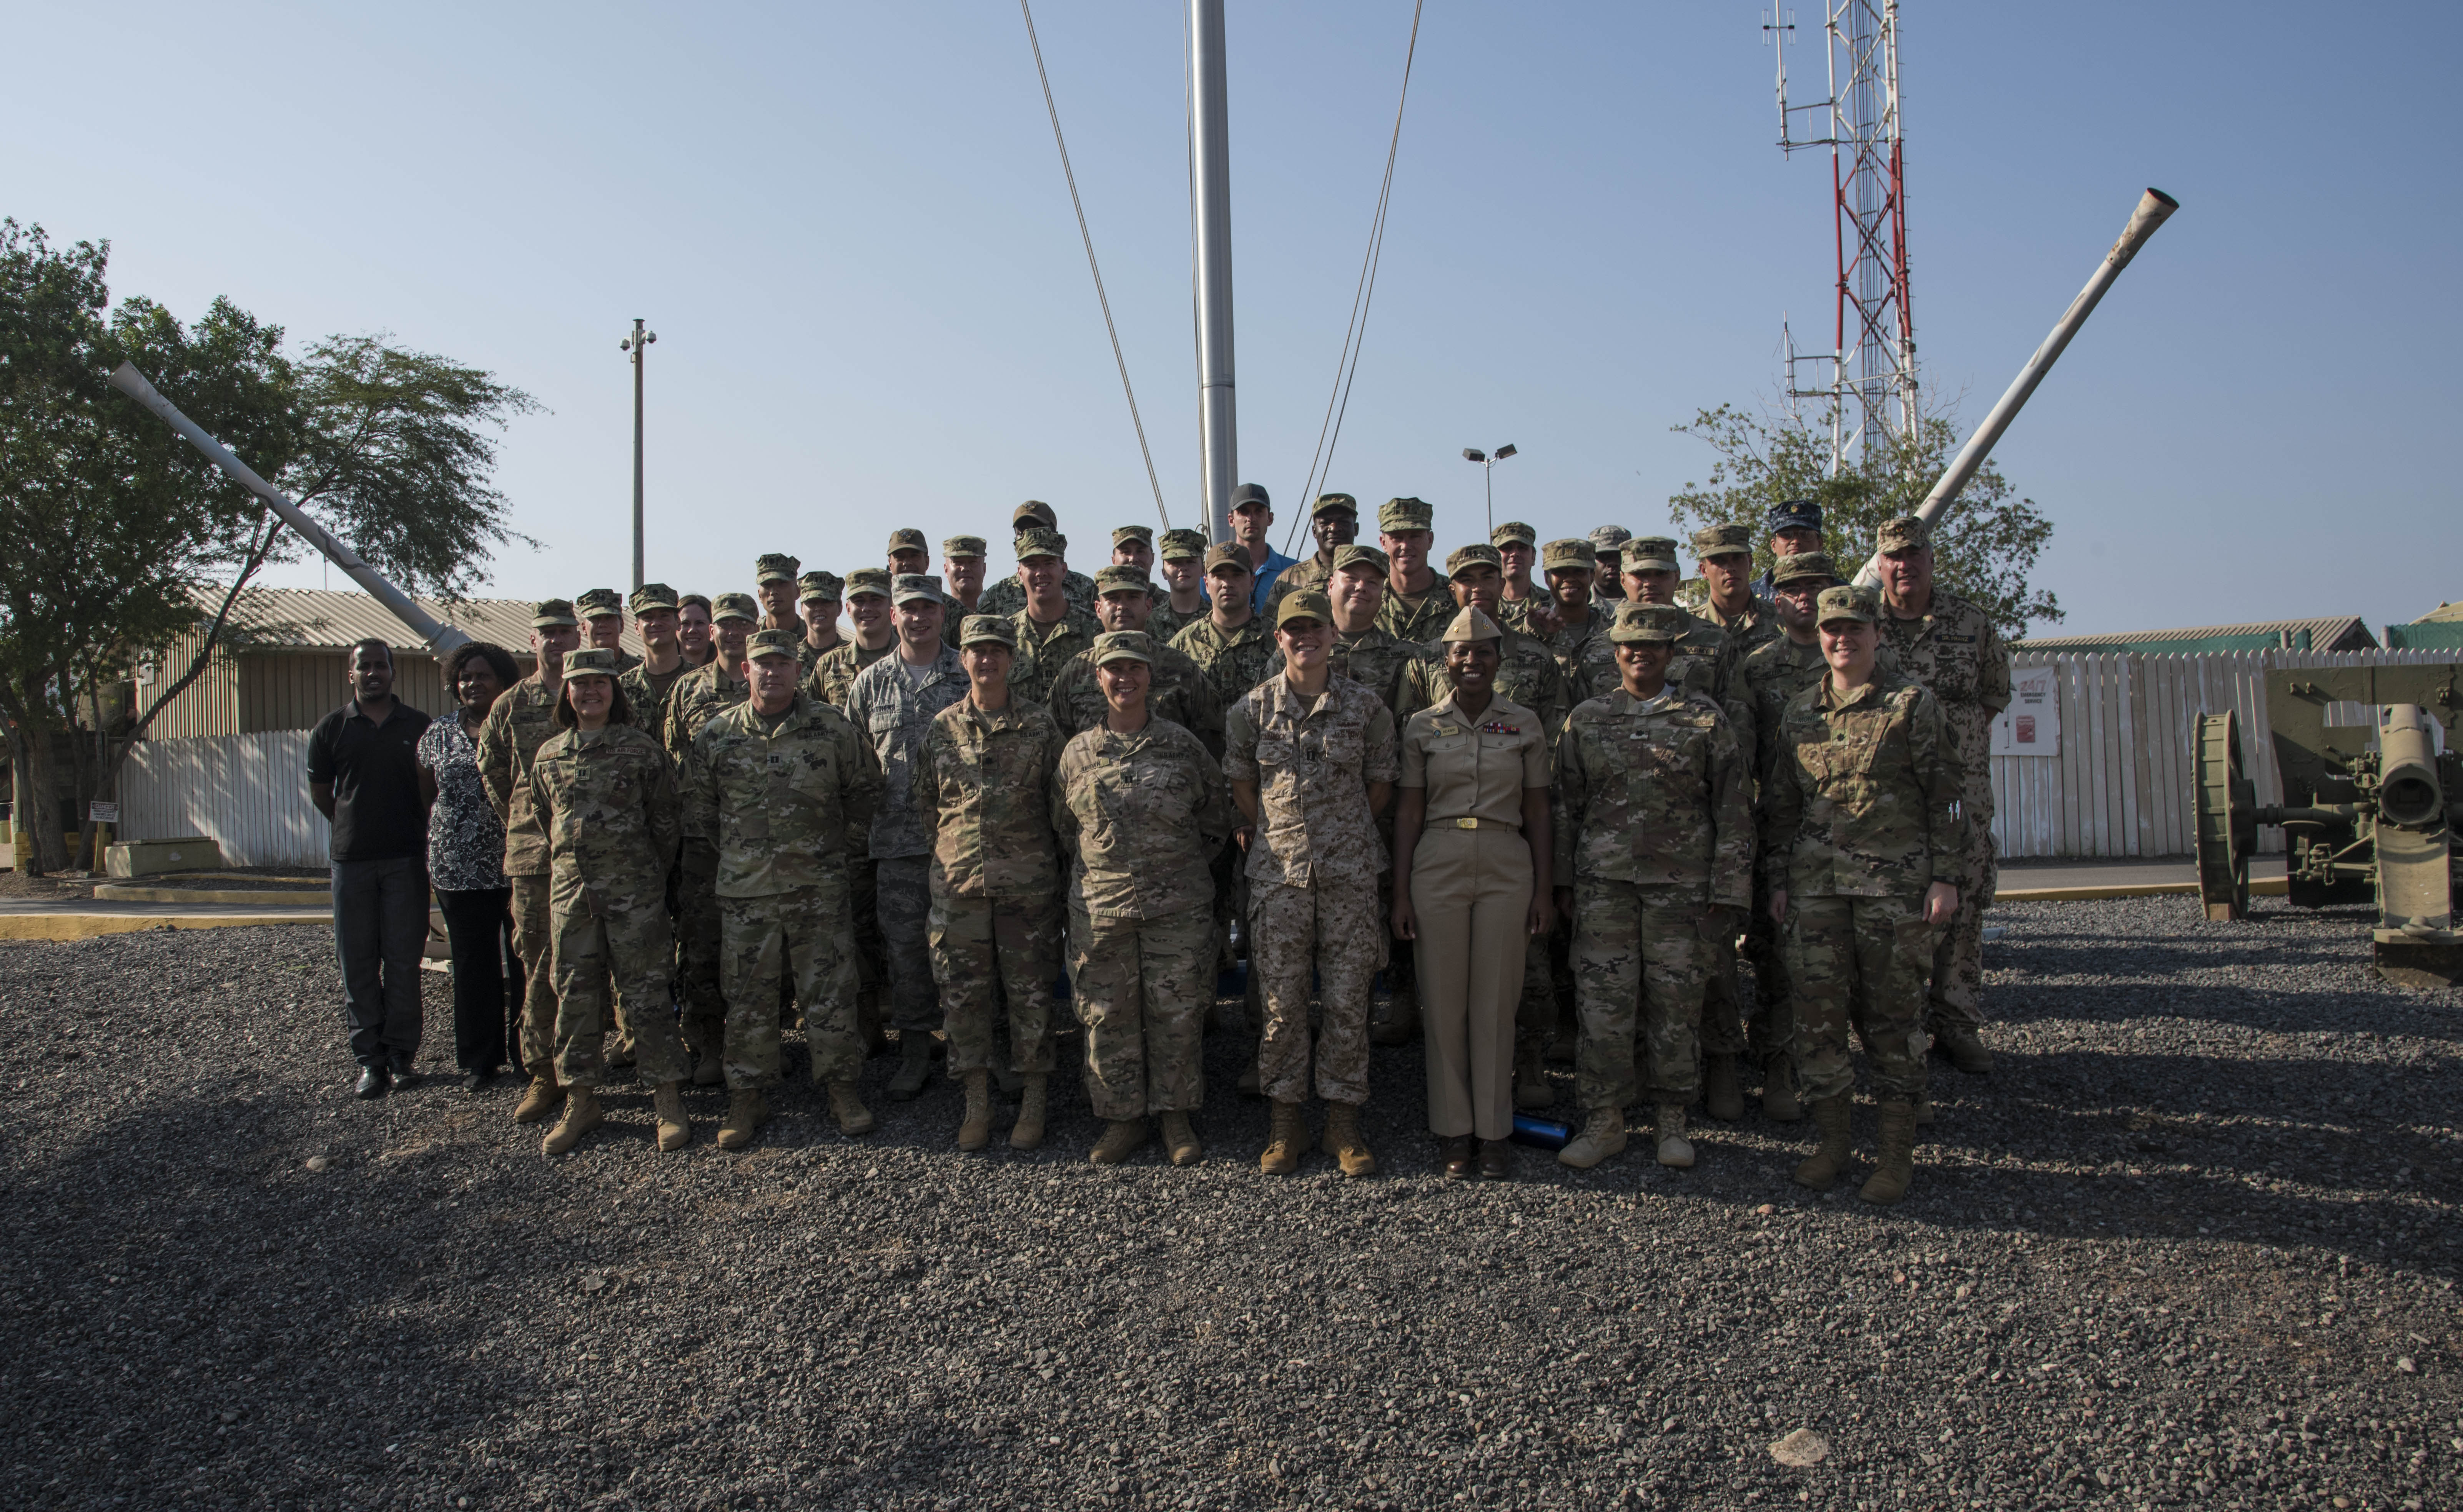 Medical professionals from across the U.S. military services, foreign militaries and local community pose for a group photo during the Military Tropical Medicine Course at Camp Lemonnier, Djibouti, Nov. 16, 2017. The Combined Joint Task Force – Horn of Africa Surgeon Cell collaborated with the Navy Medicine Professional Development Center to develop the three-day course, which discussed challenges posed to medical personnel providing care for troops operating within the Horn of Africa and the East African region. (U.S. Air National Guard photo by Staff Sgt. Allyson L. Manners)